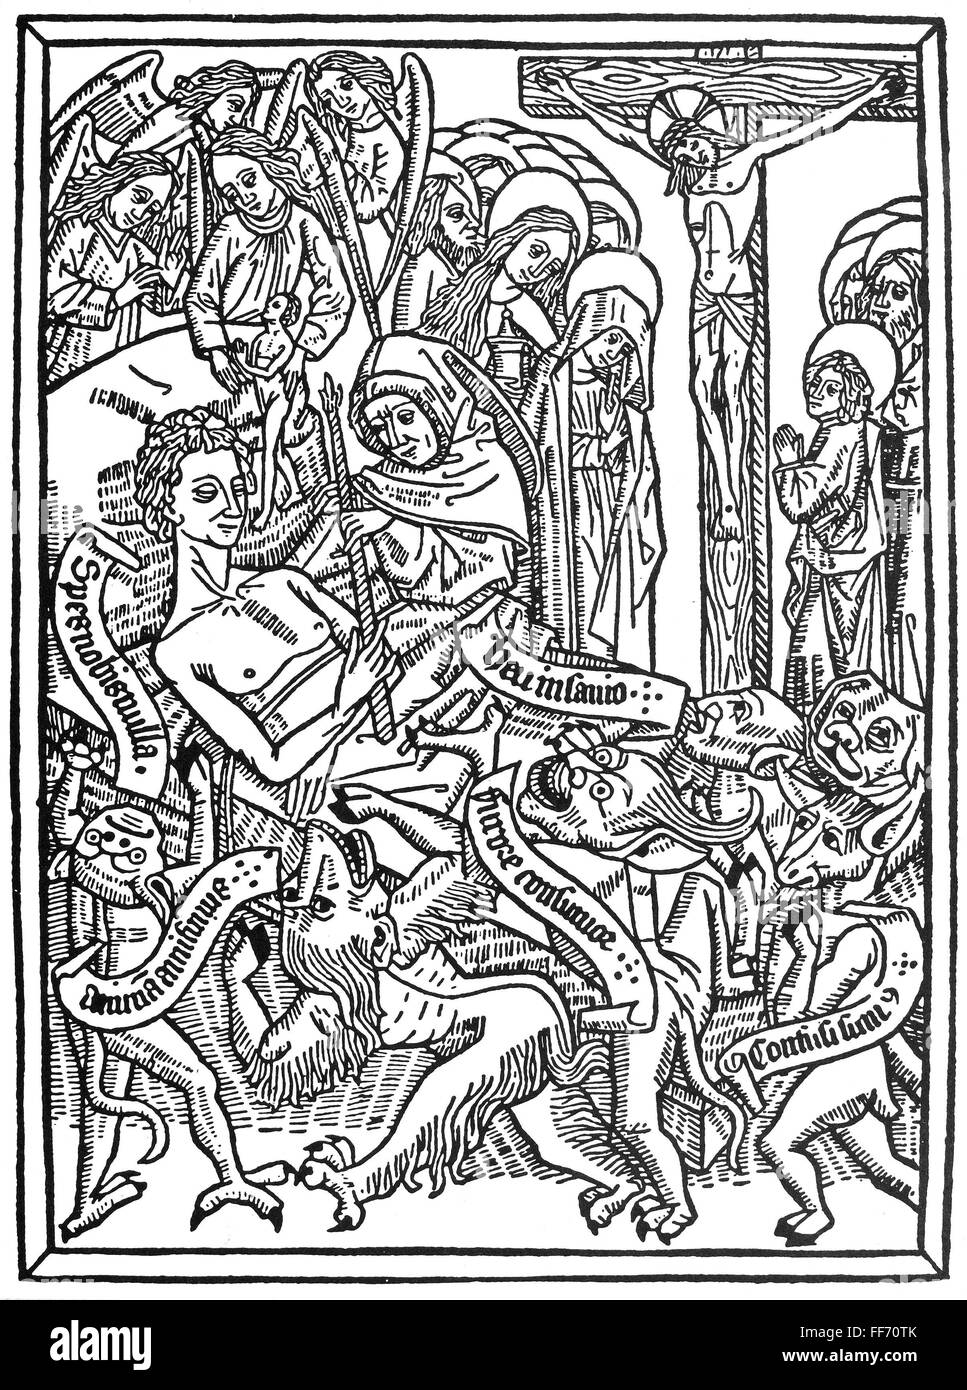 ars moriendi 1471 nangels vying with and triumphing over demons